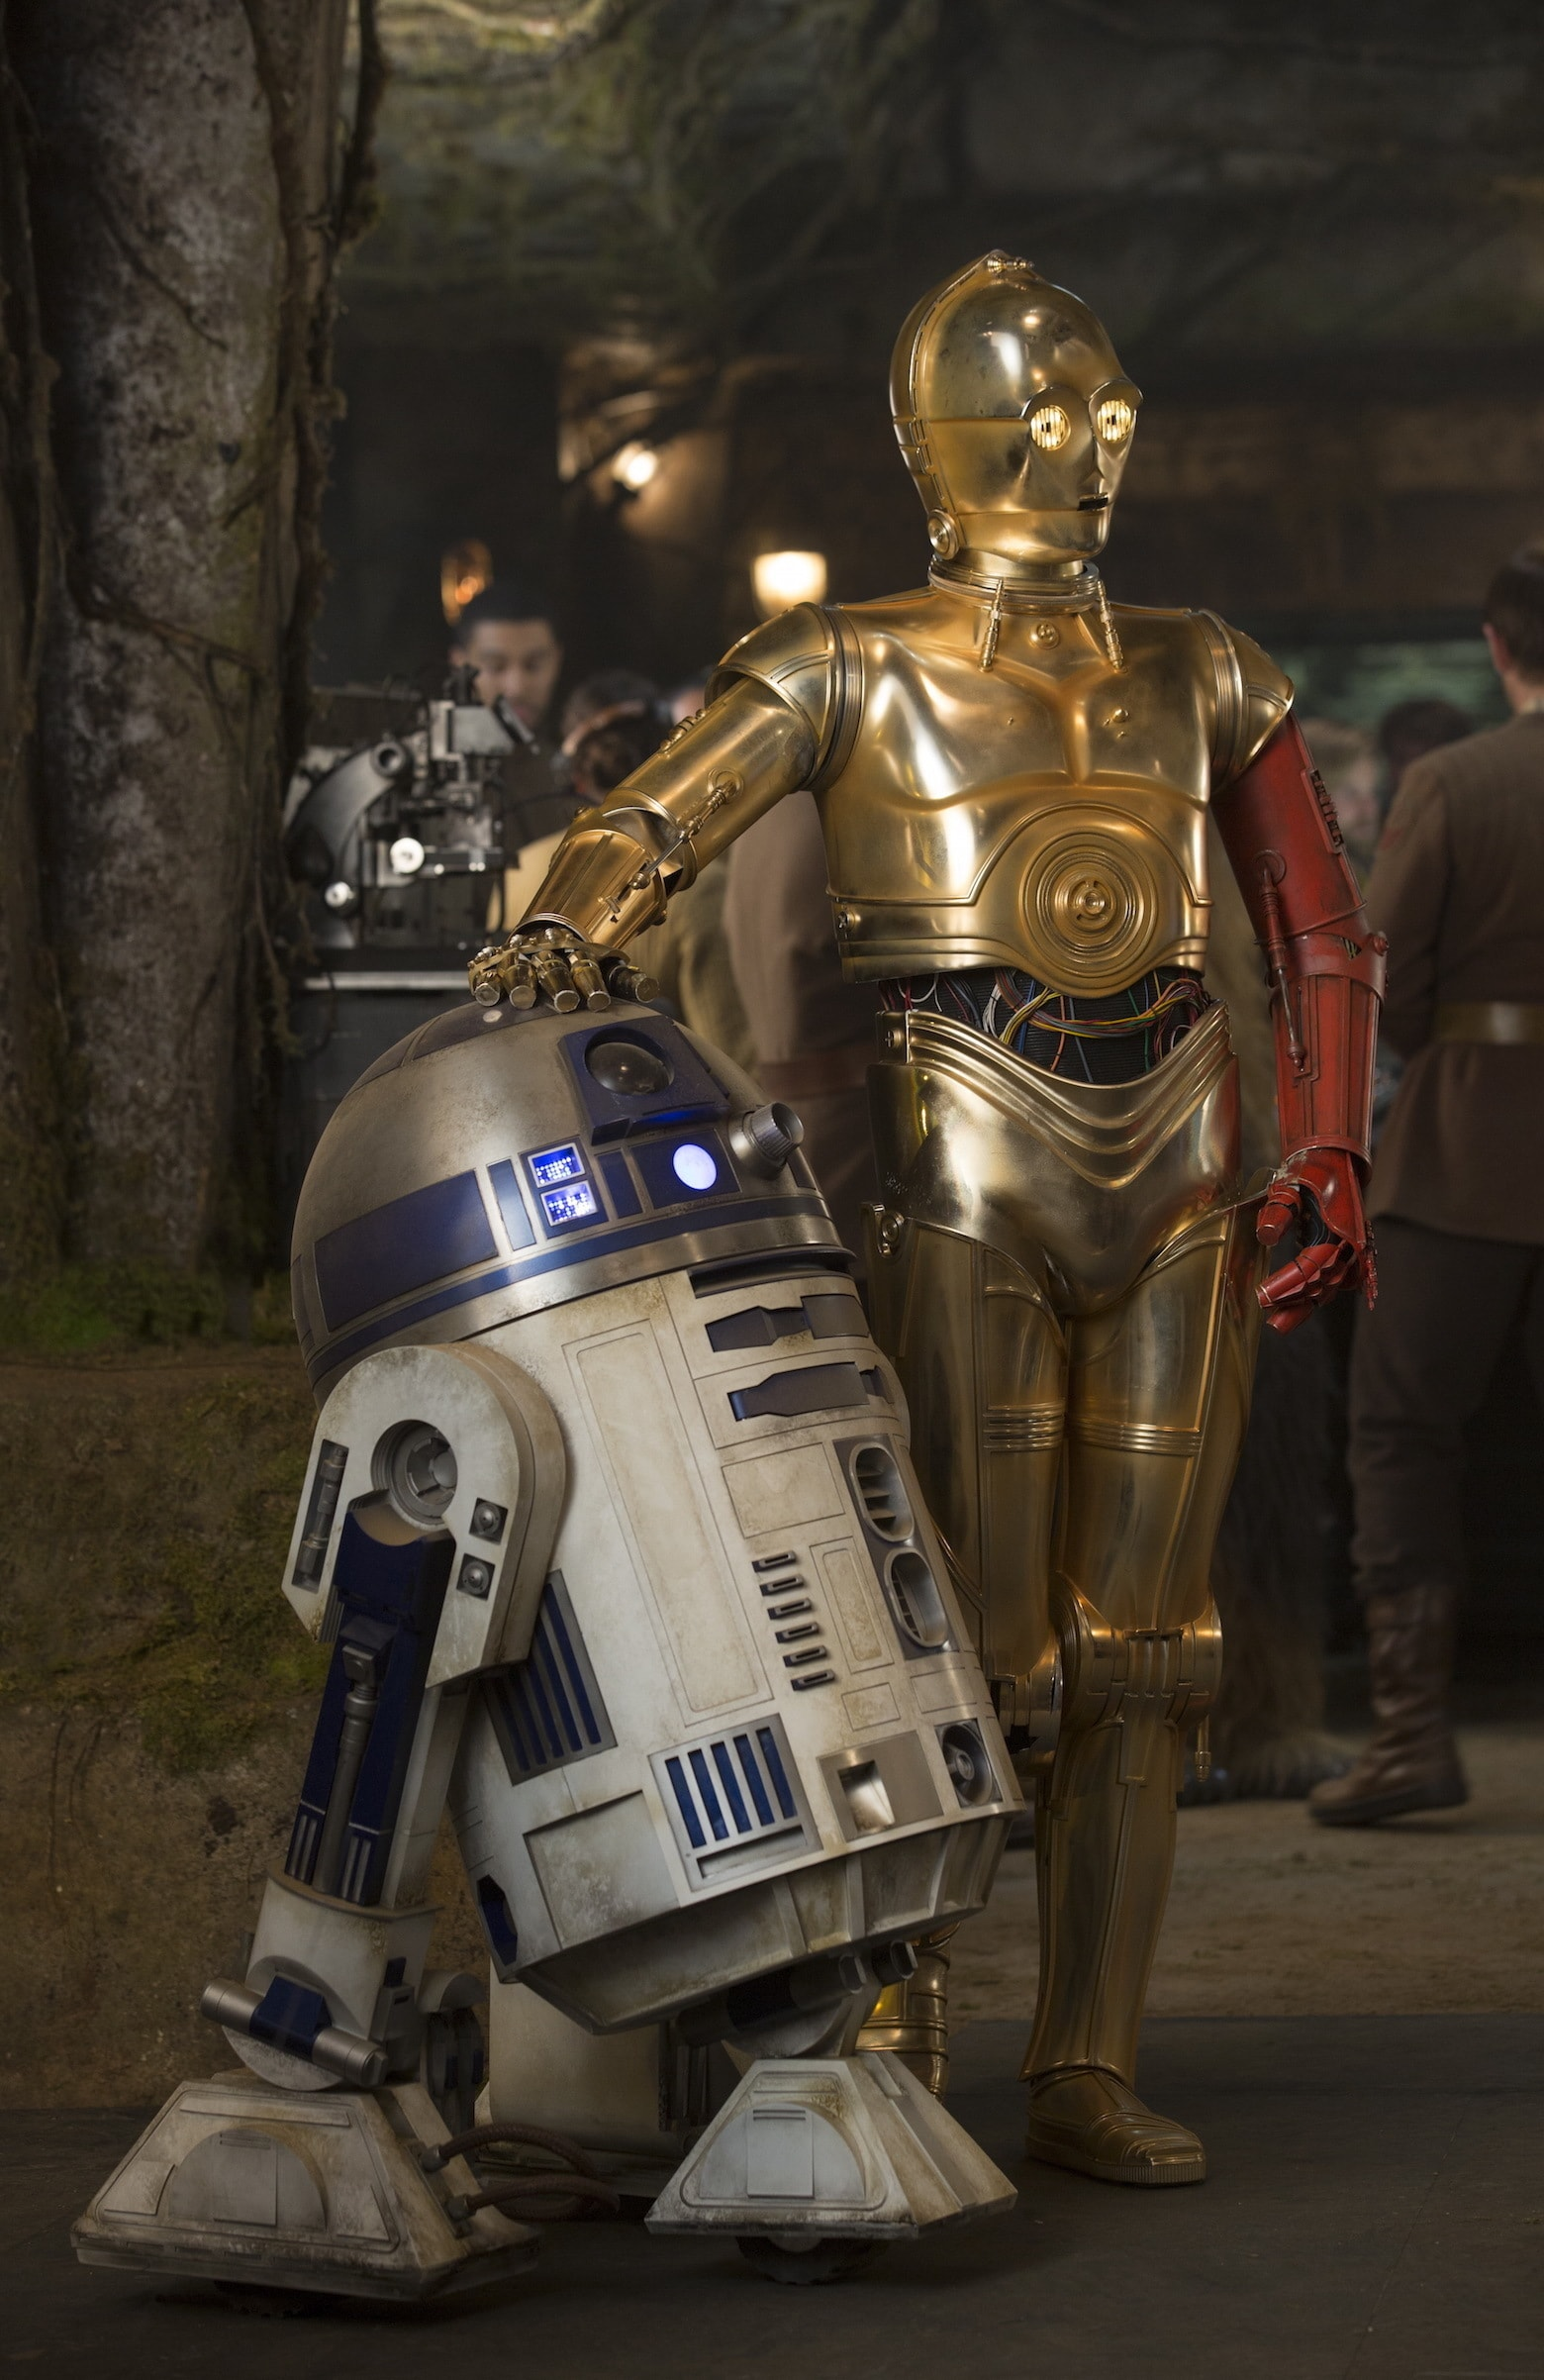 star wars episode 7 the force awakens pictures